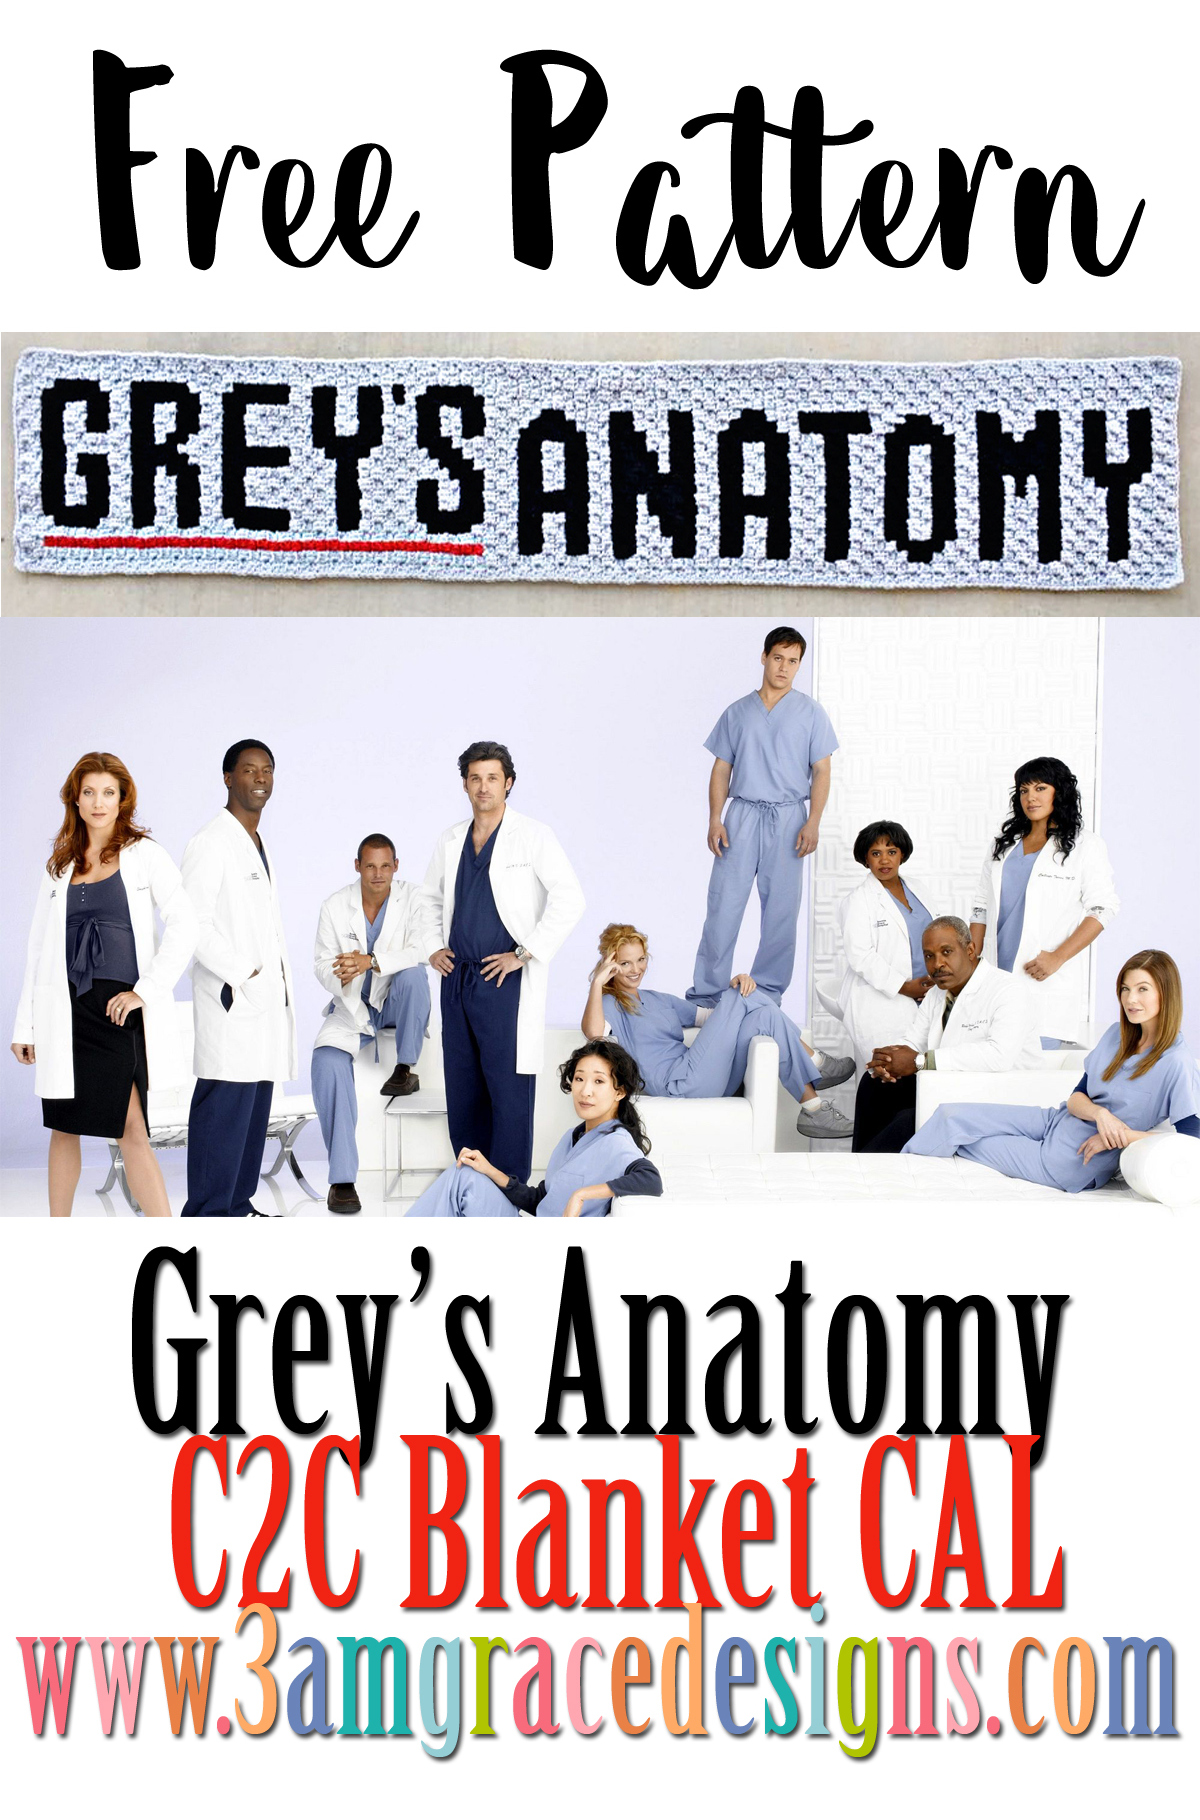 Greys Anatomy C2c Cal Announcement 3amgracedesigns